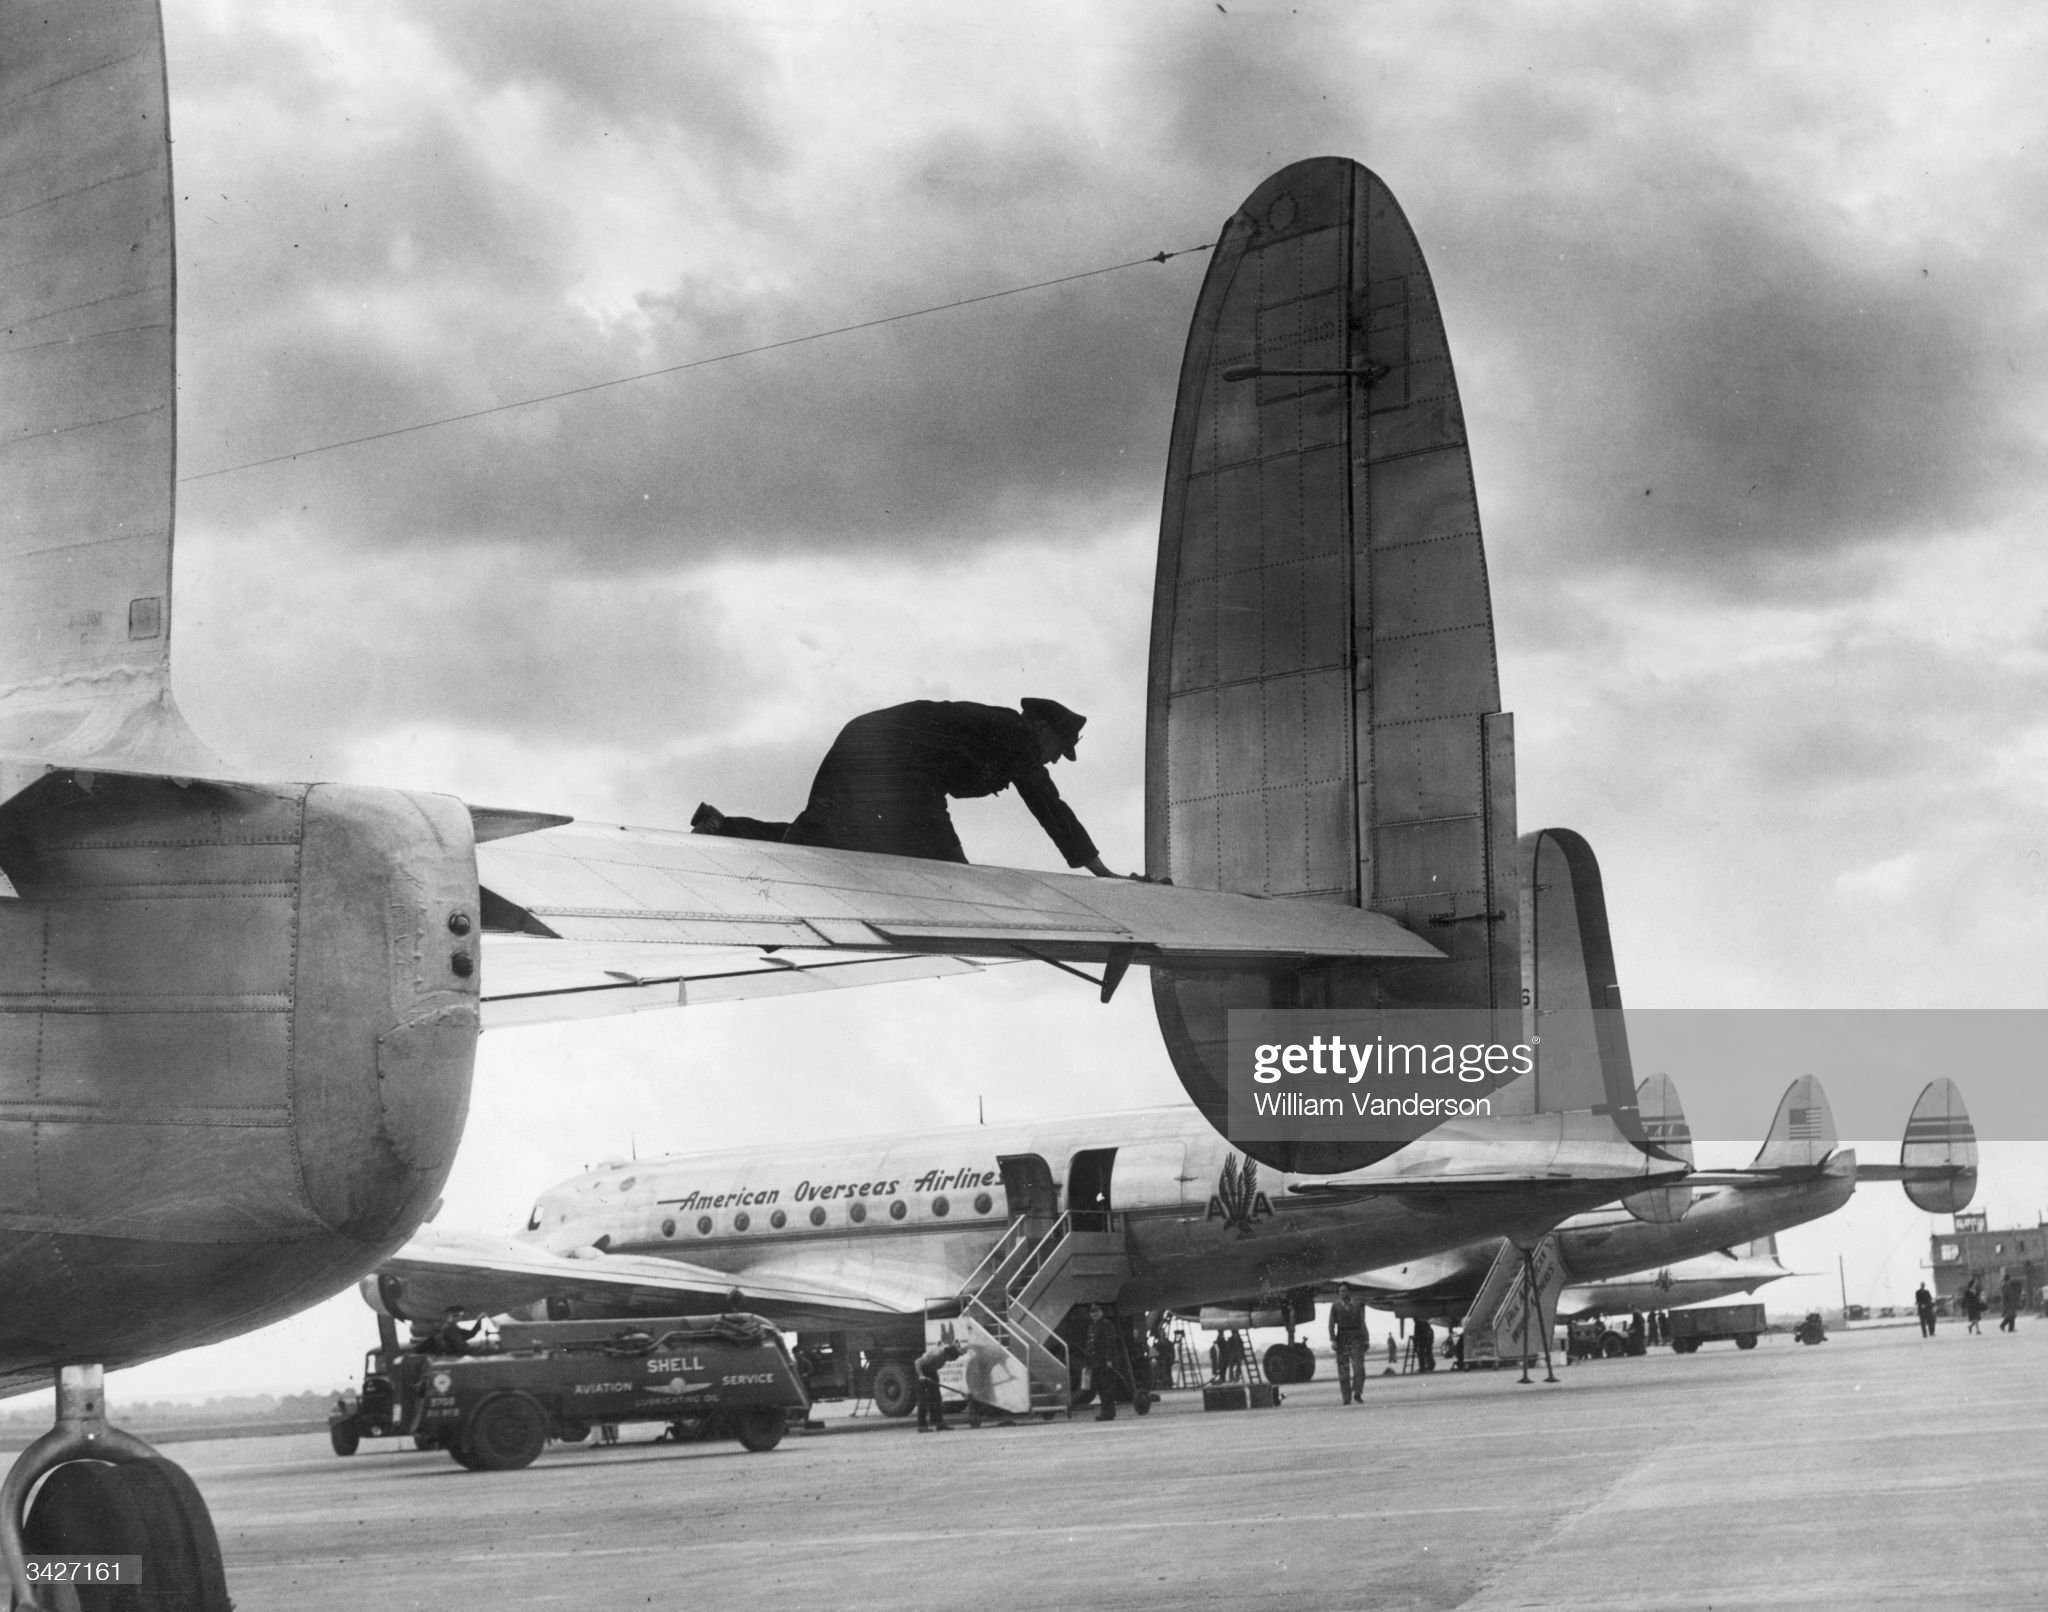 5th-october-1946-a-scene-at-london-airport-heathrow-one-of-the-worlds-picture-id3427161